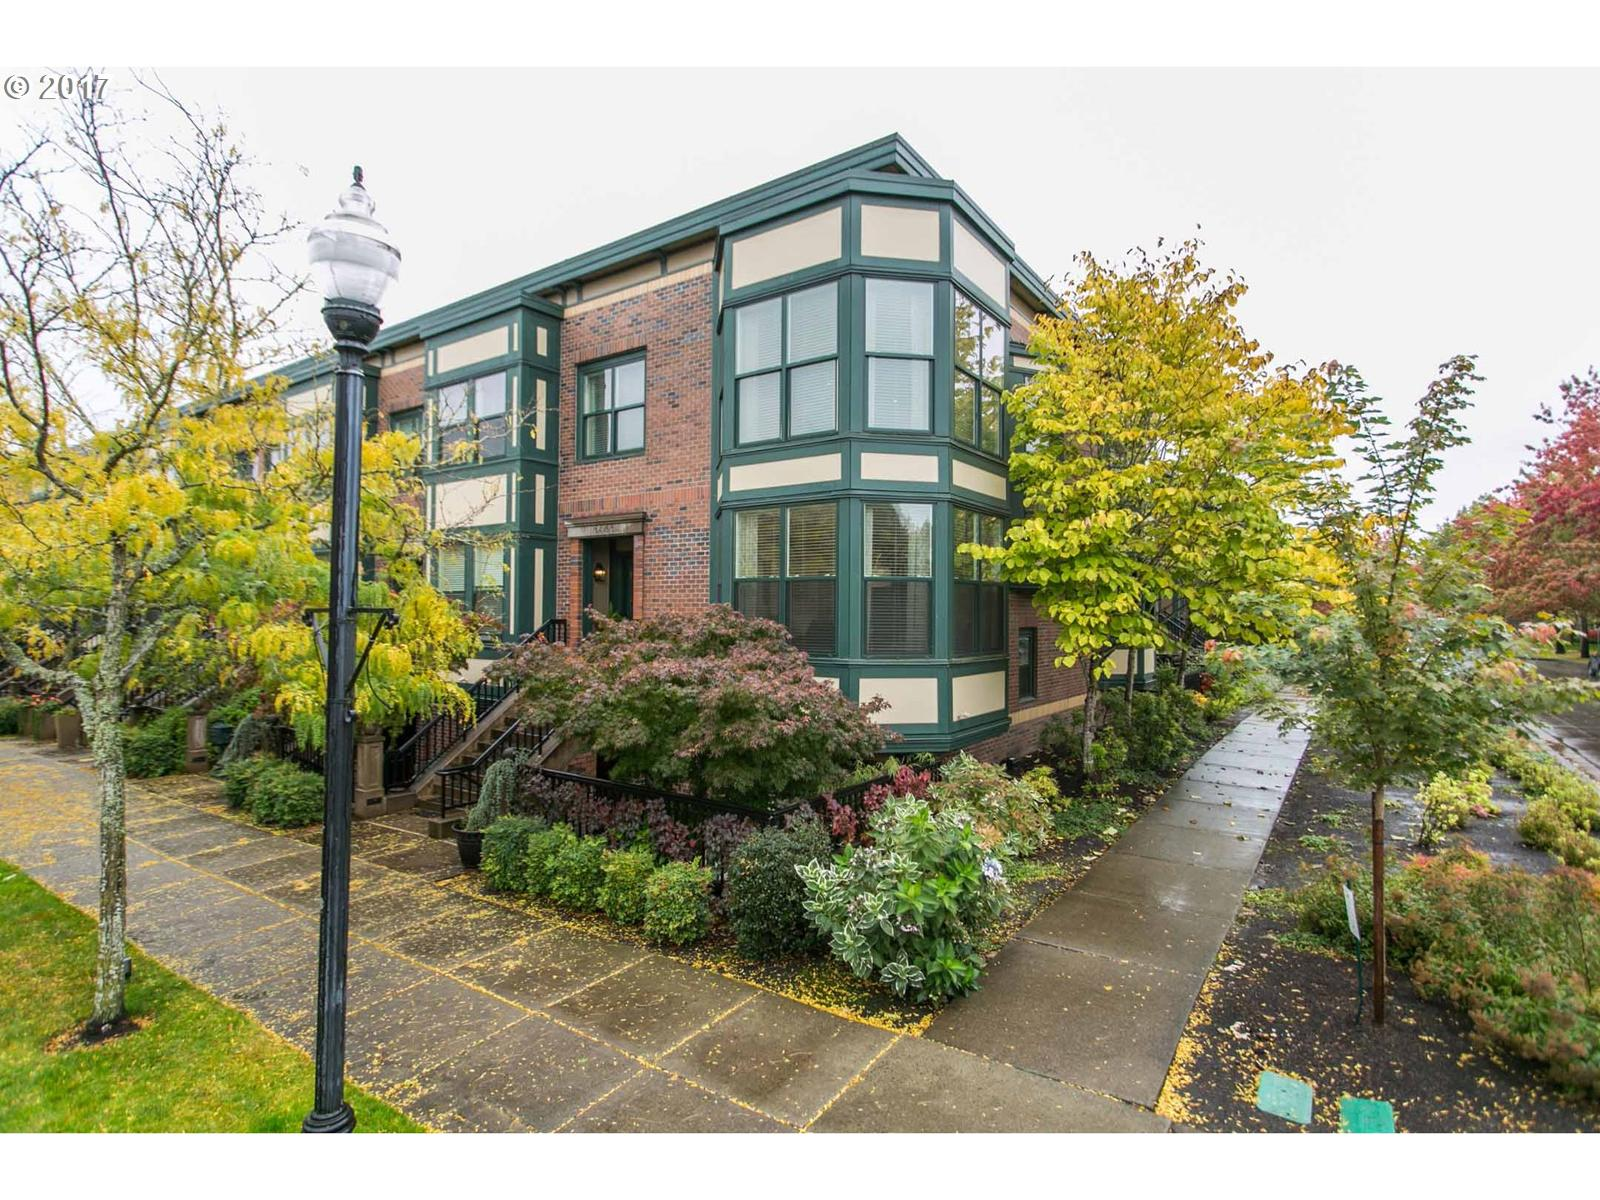 1461 Ne Orenco Station Pkwy Hillsboro Or Mls 17645694